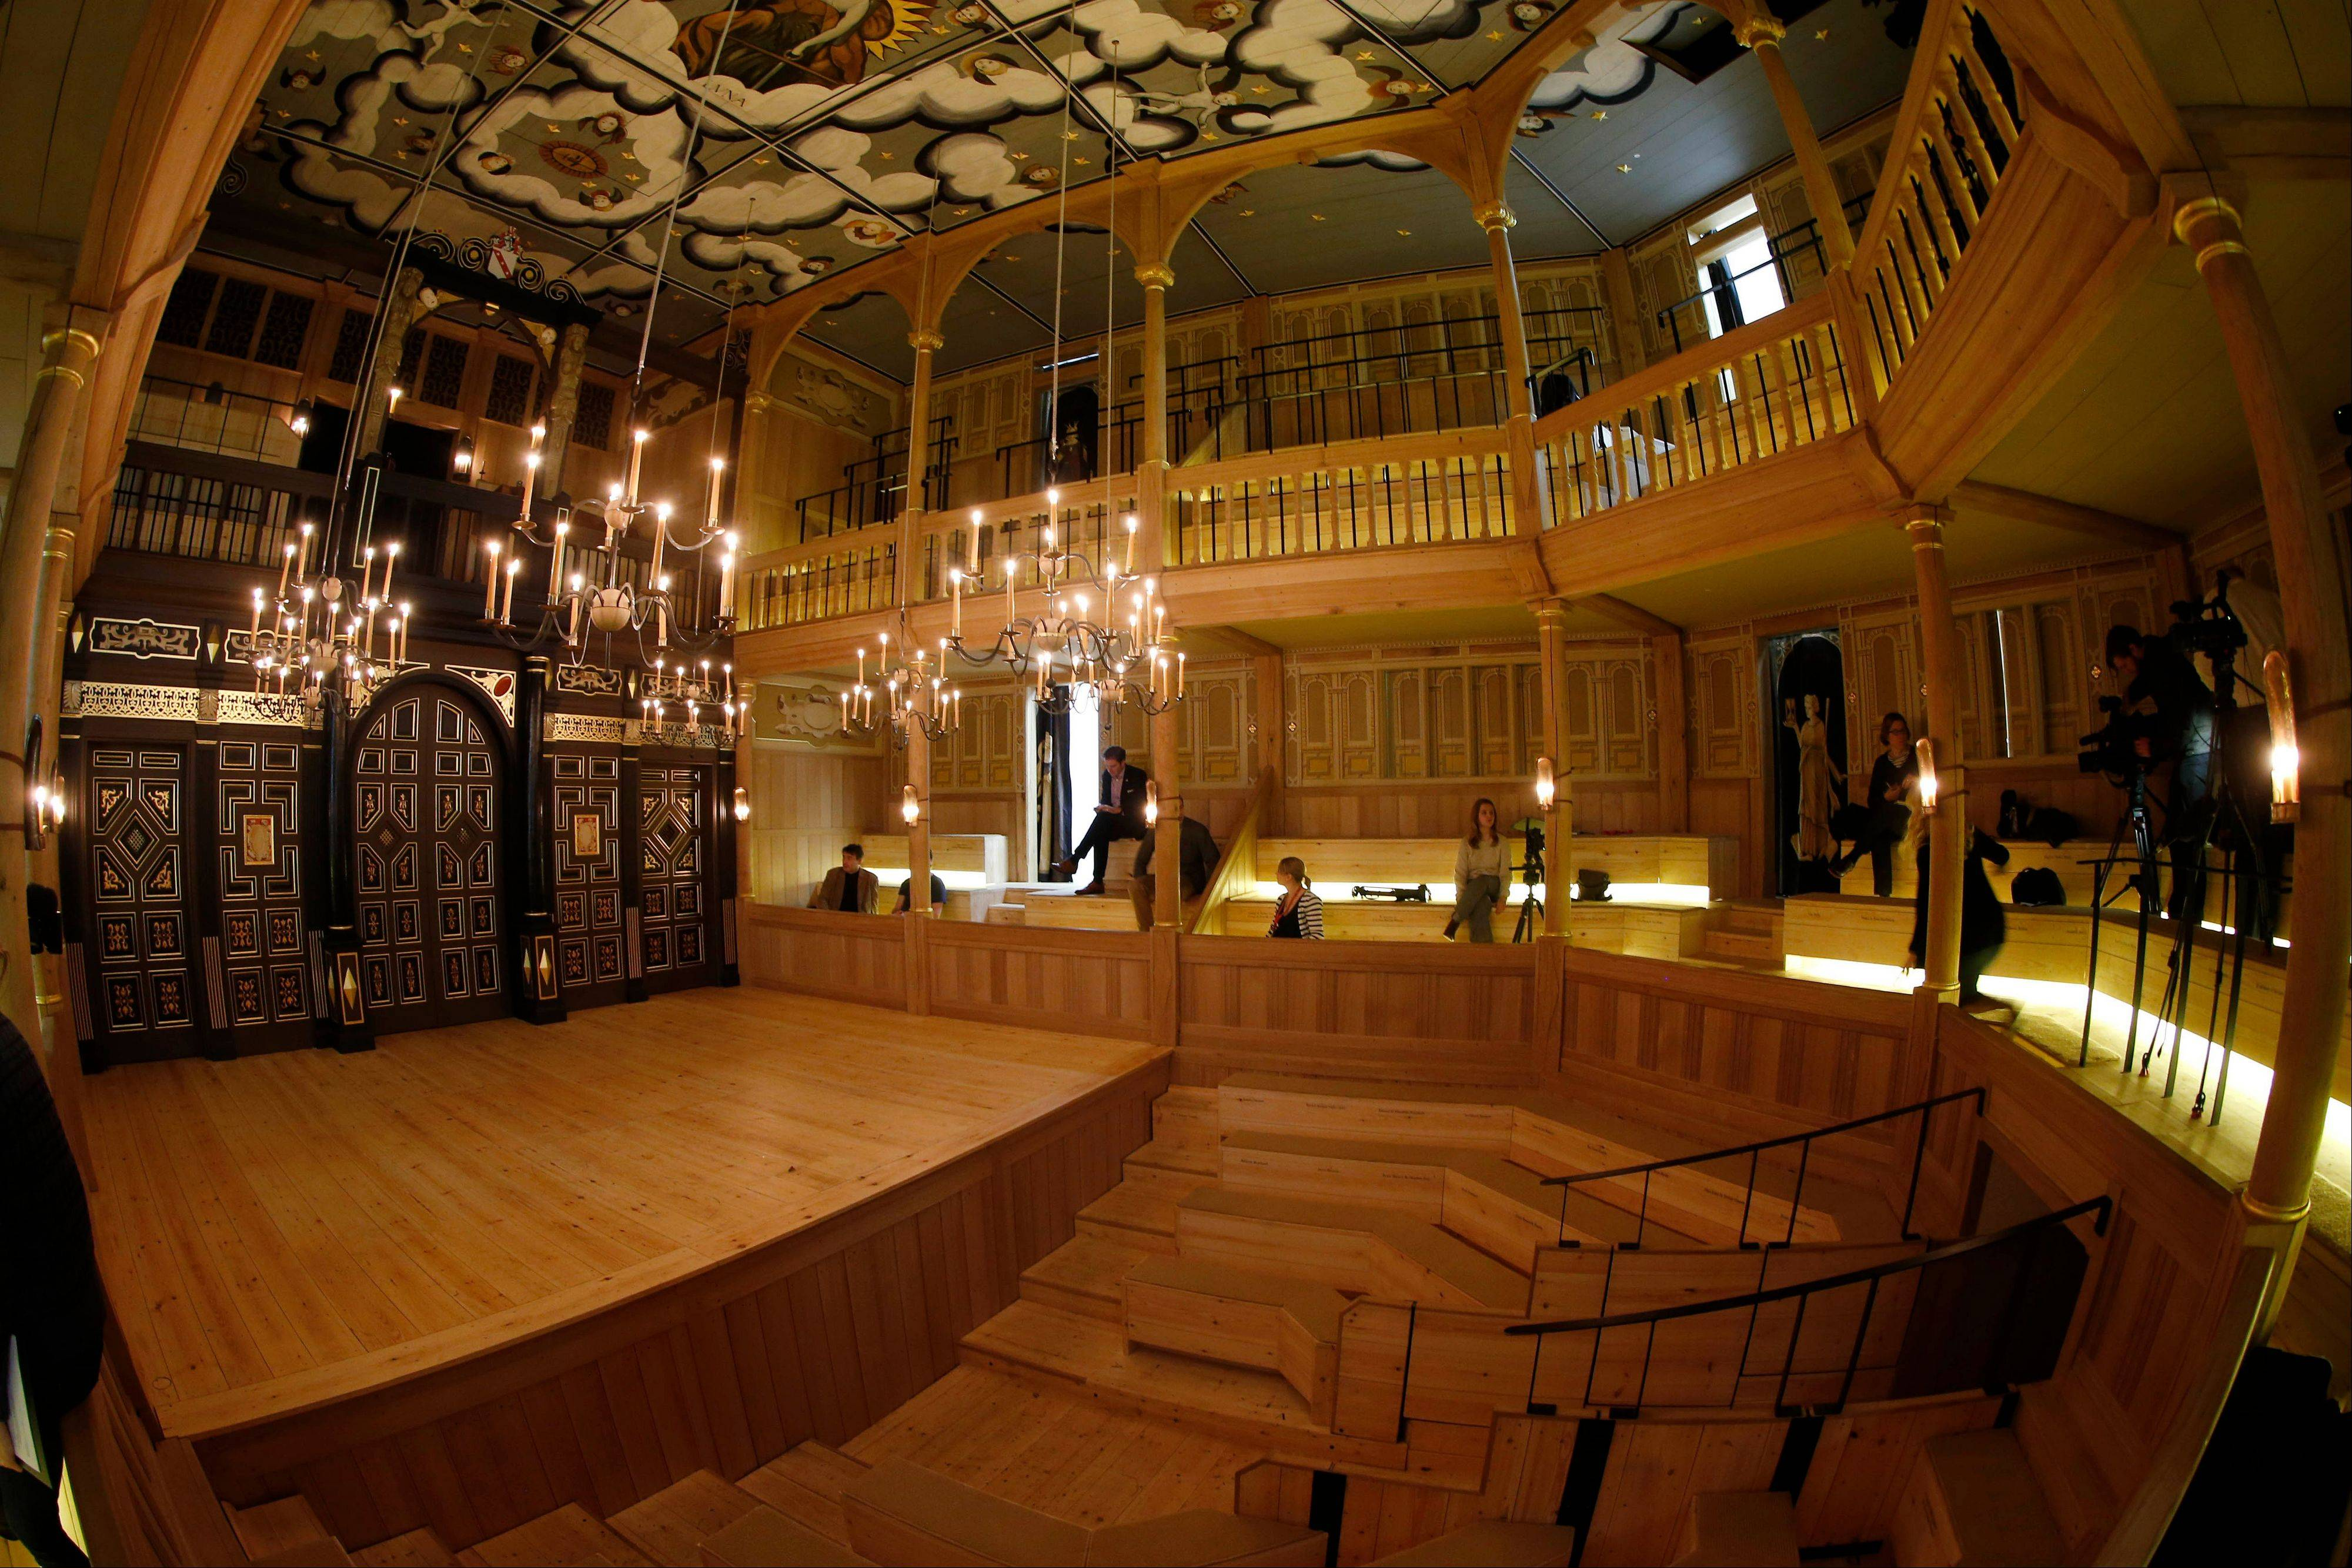 The Sam Wanamaker Playhouse in London is a reproduction of a Jacobean playhouse and it seats 340 people with two tiers of galleried seating with an historically accurate pit seating area.